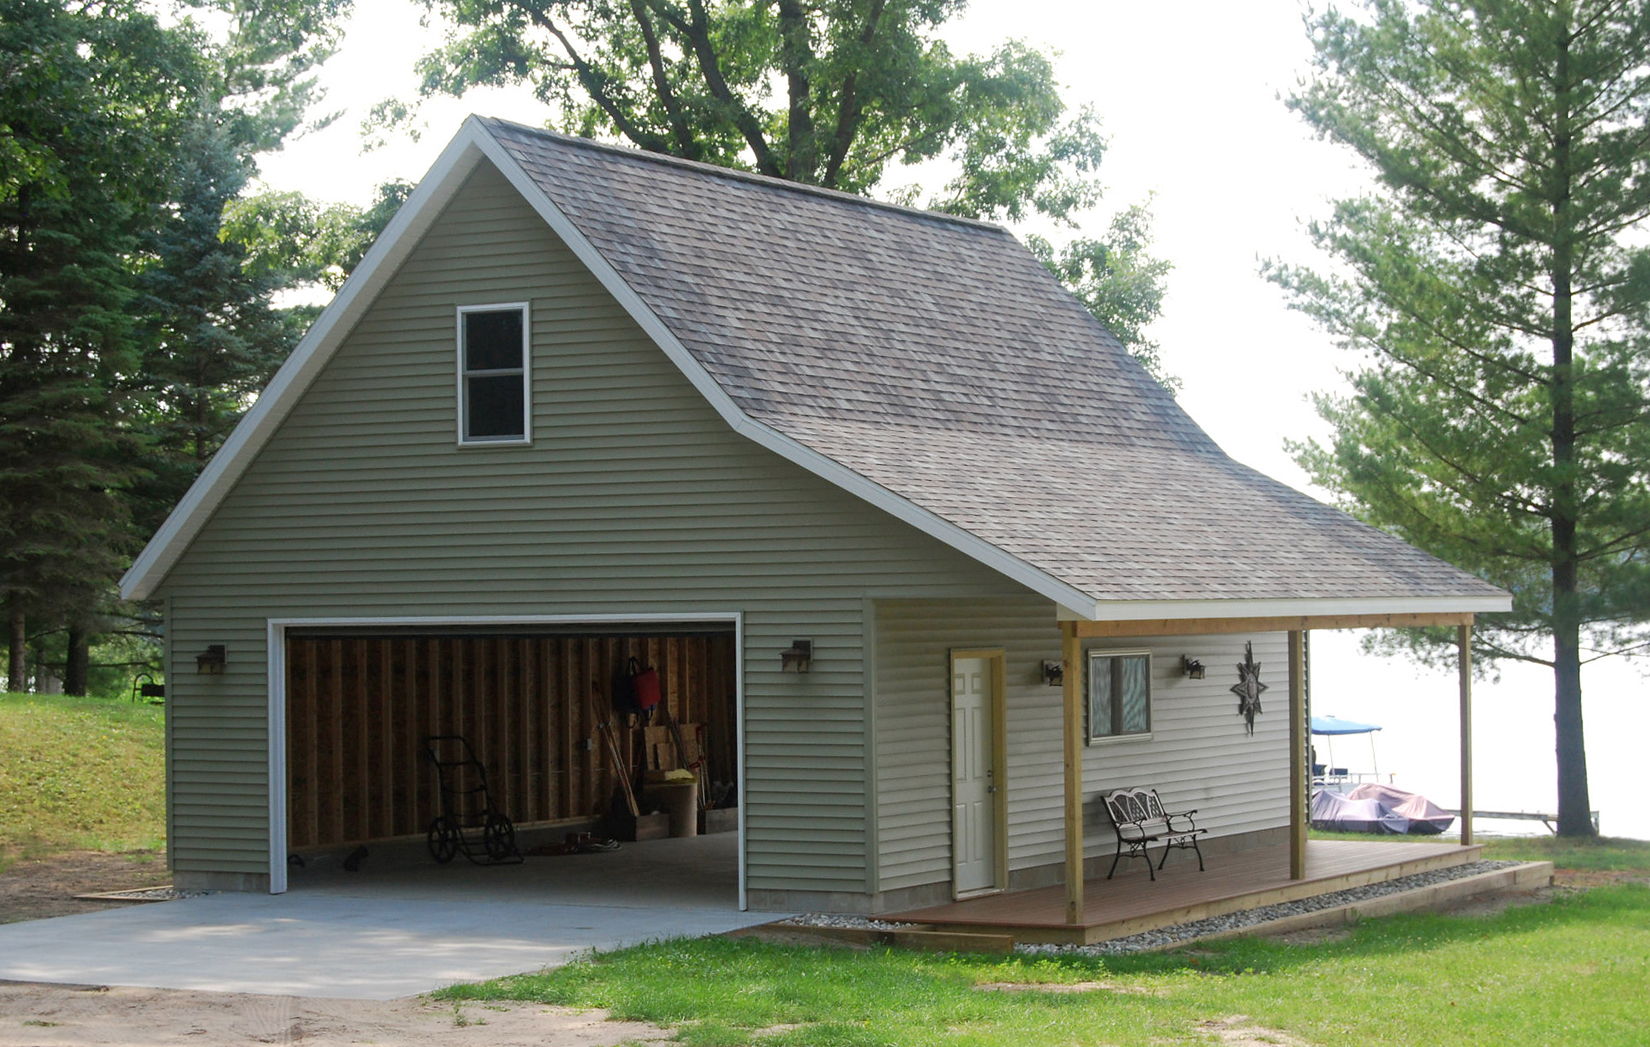 Pole barn house pictures that show classic construction for Garage styles pictures